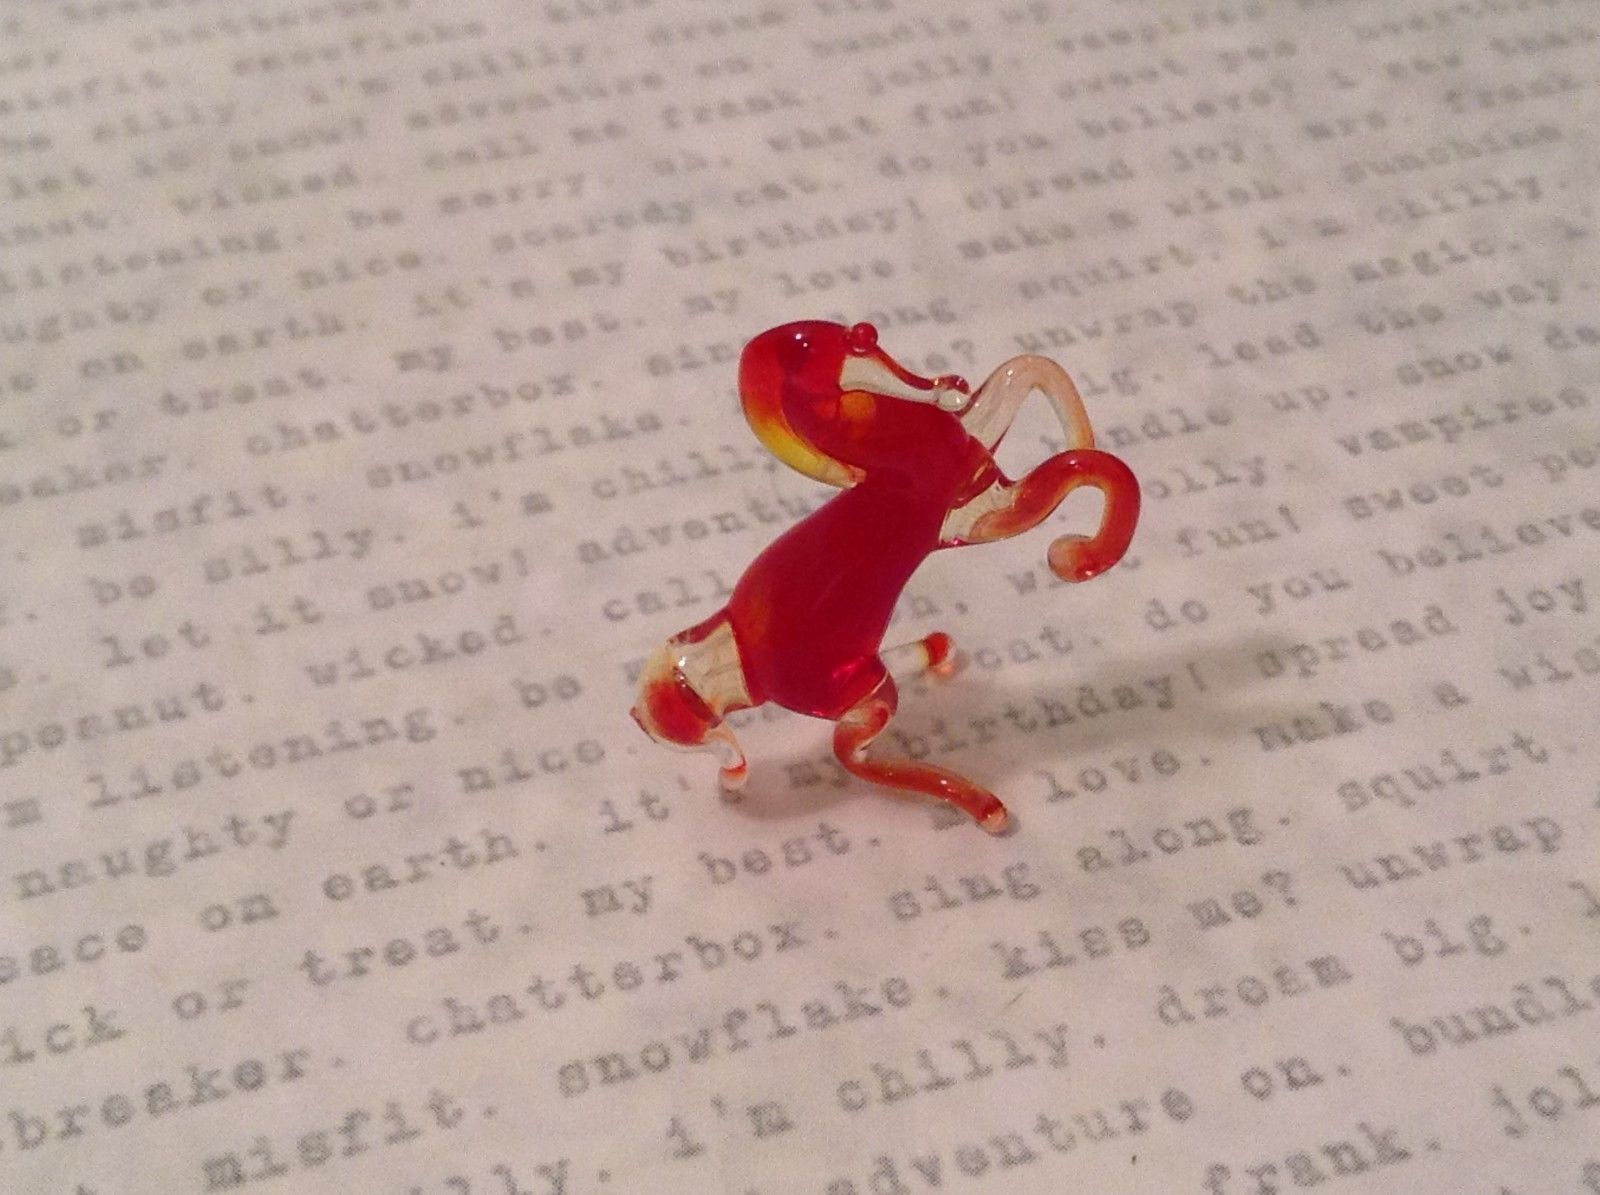 Micro miniature hand blown glass figurine Red Rearing Horse USA NIB